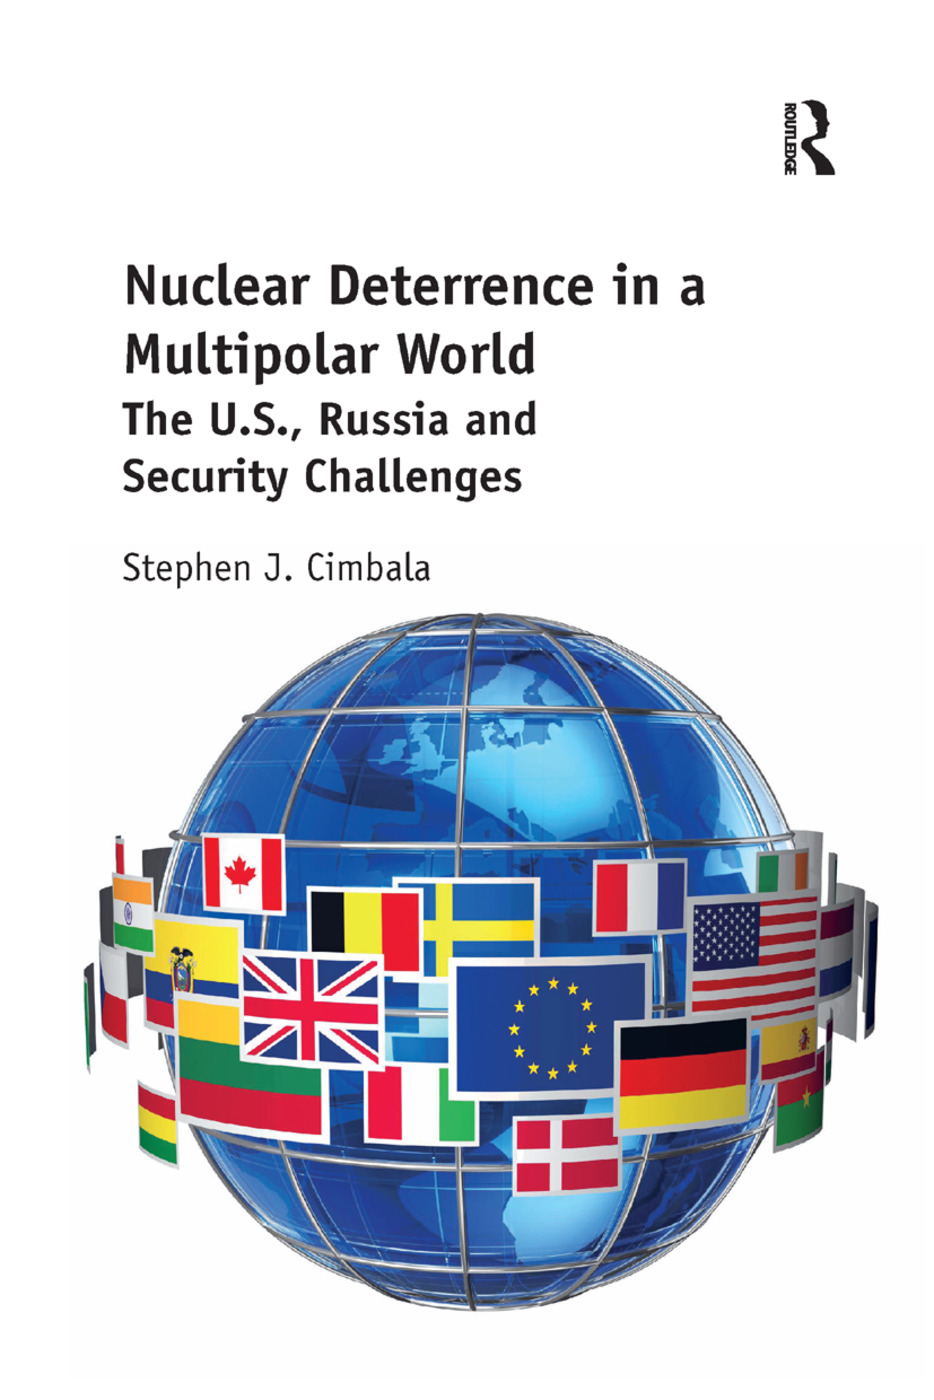 Nuclear Deterrence in a Multipolar World: The U.S., Russia and Security Challenges book cover